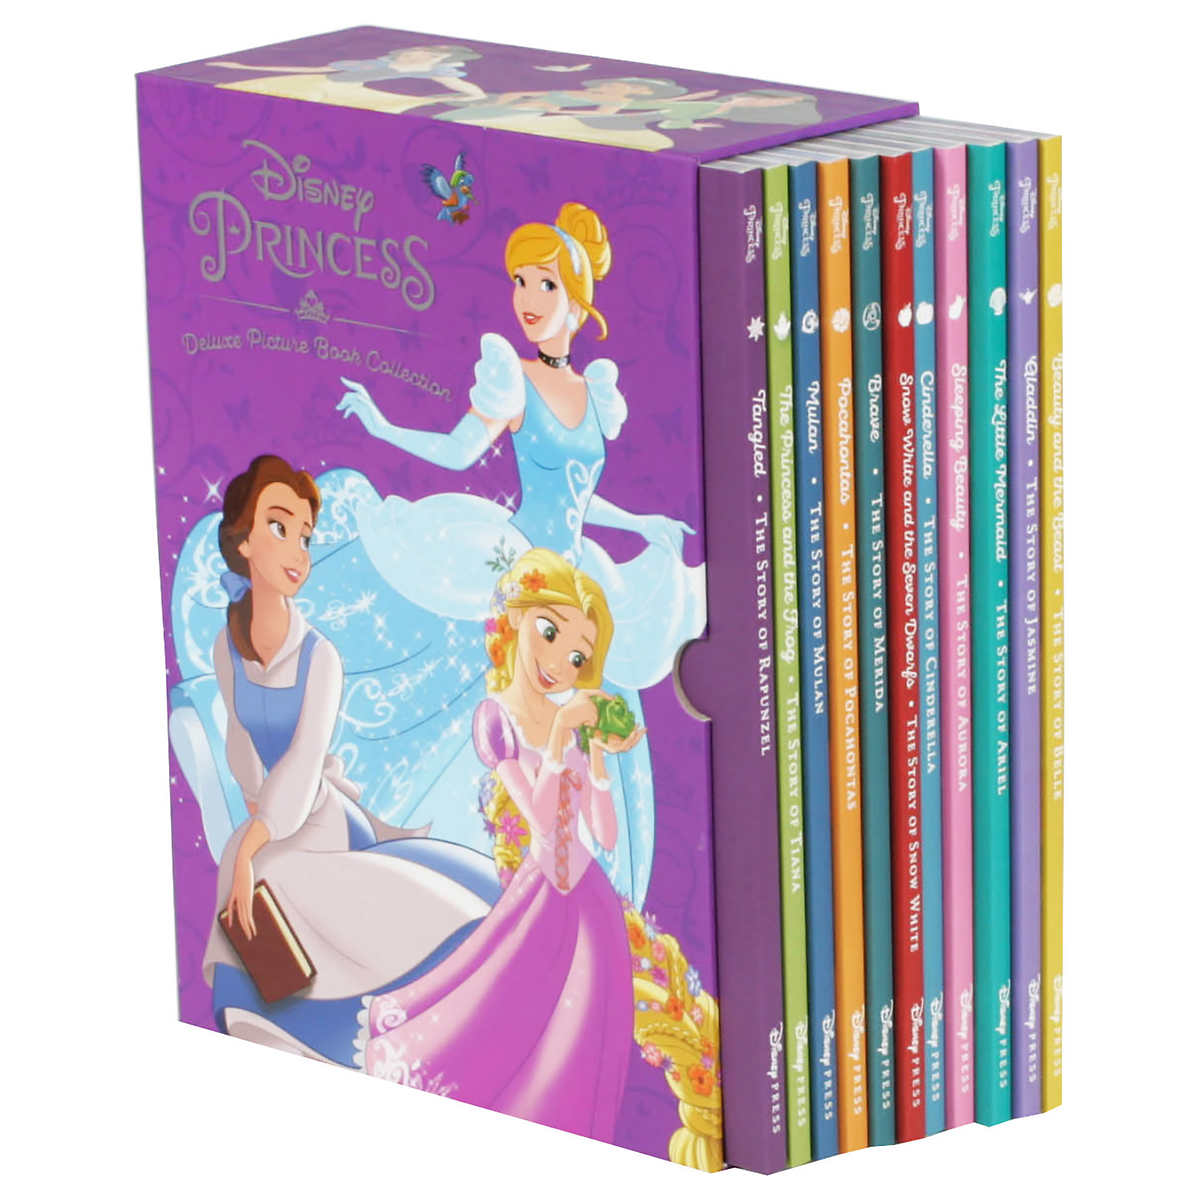 Princess coloring set - Disney Princess Deluxe Picture Book Collection 11 Book Box Set